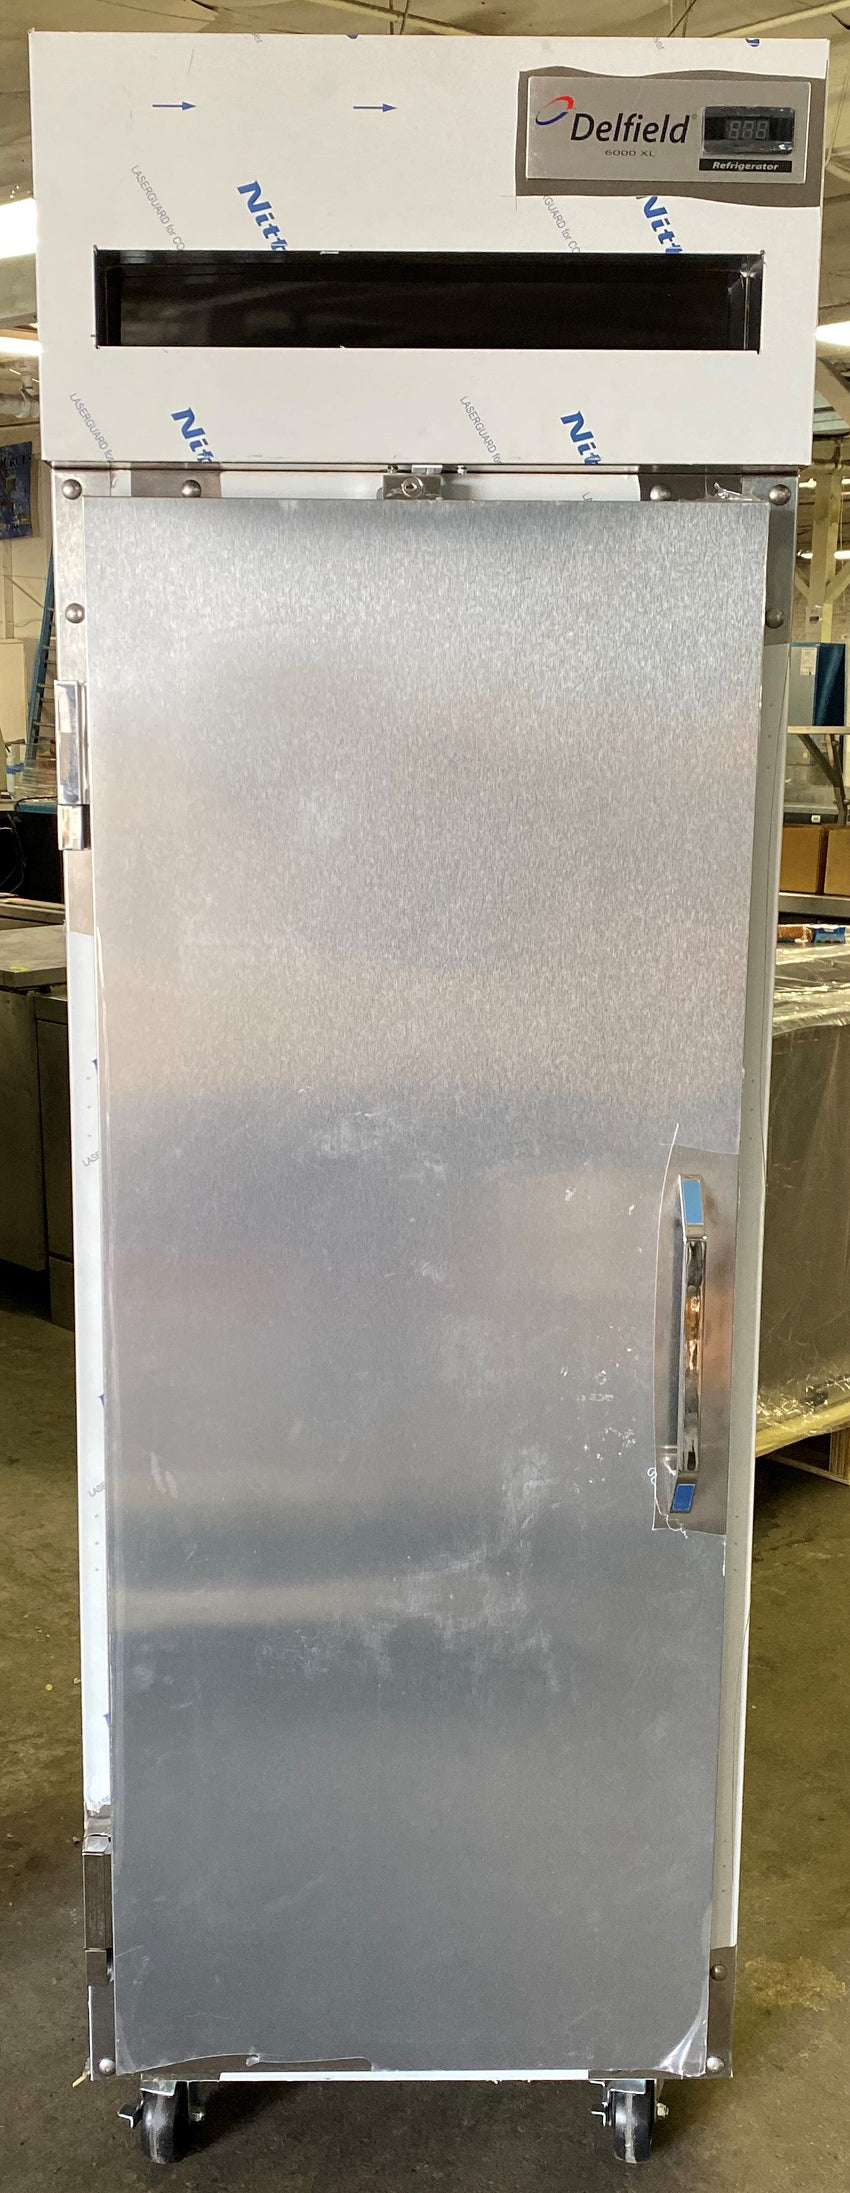 "Delfield 6025XL-S 25.5"" Single Section Reach-In Refrigerator, 115v"